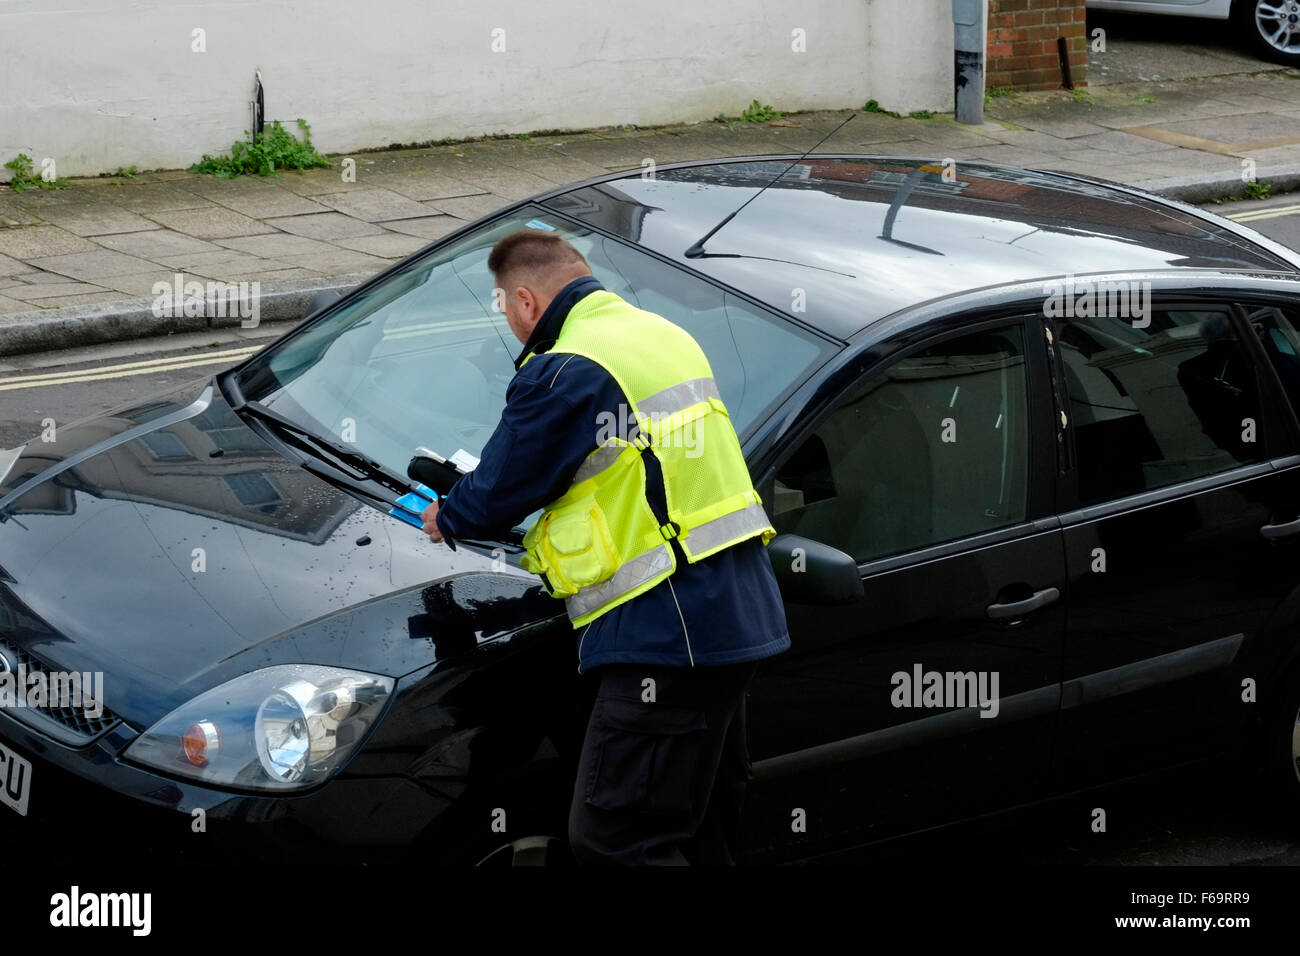 traffic warden issuing a parking ticket for a violation england uk - Stock Image